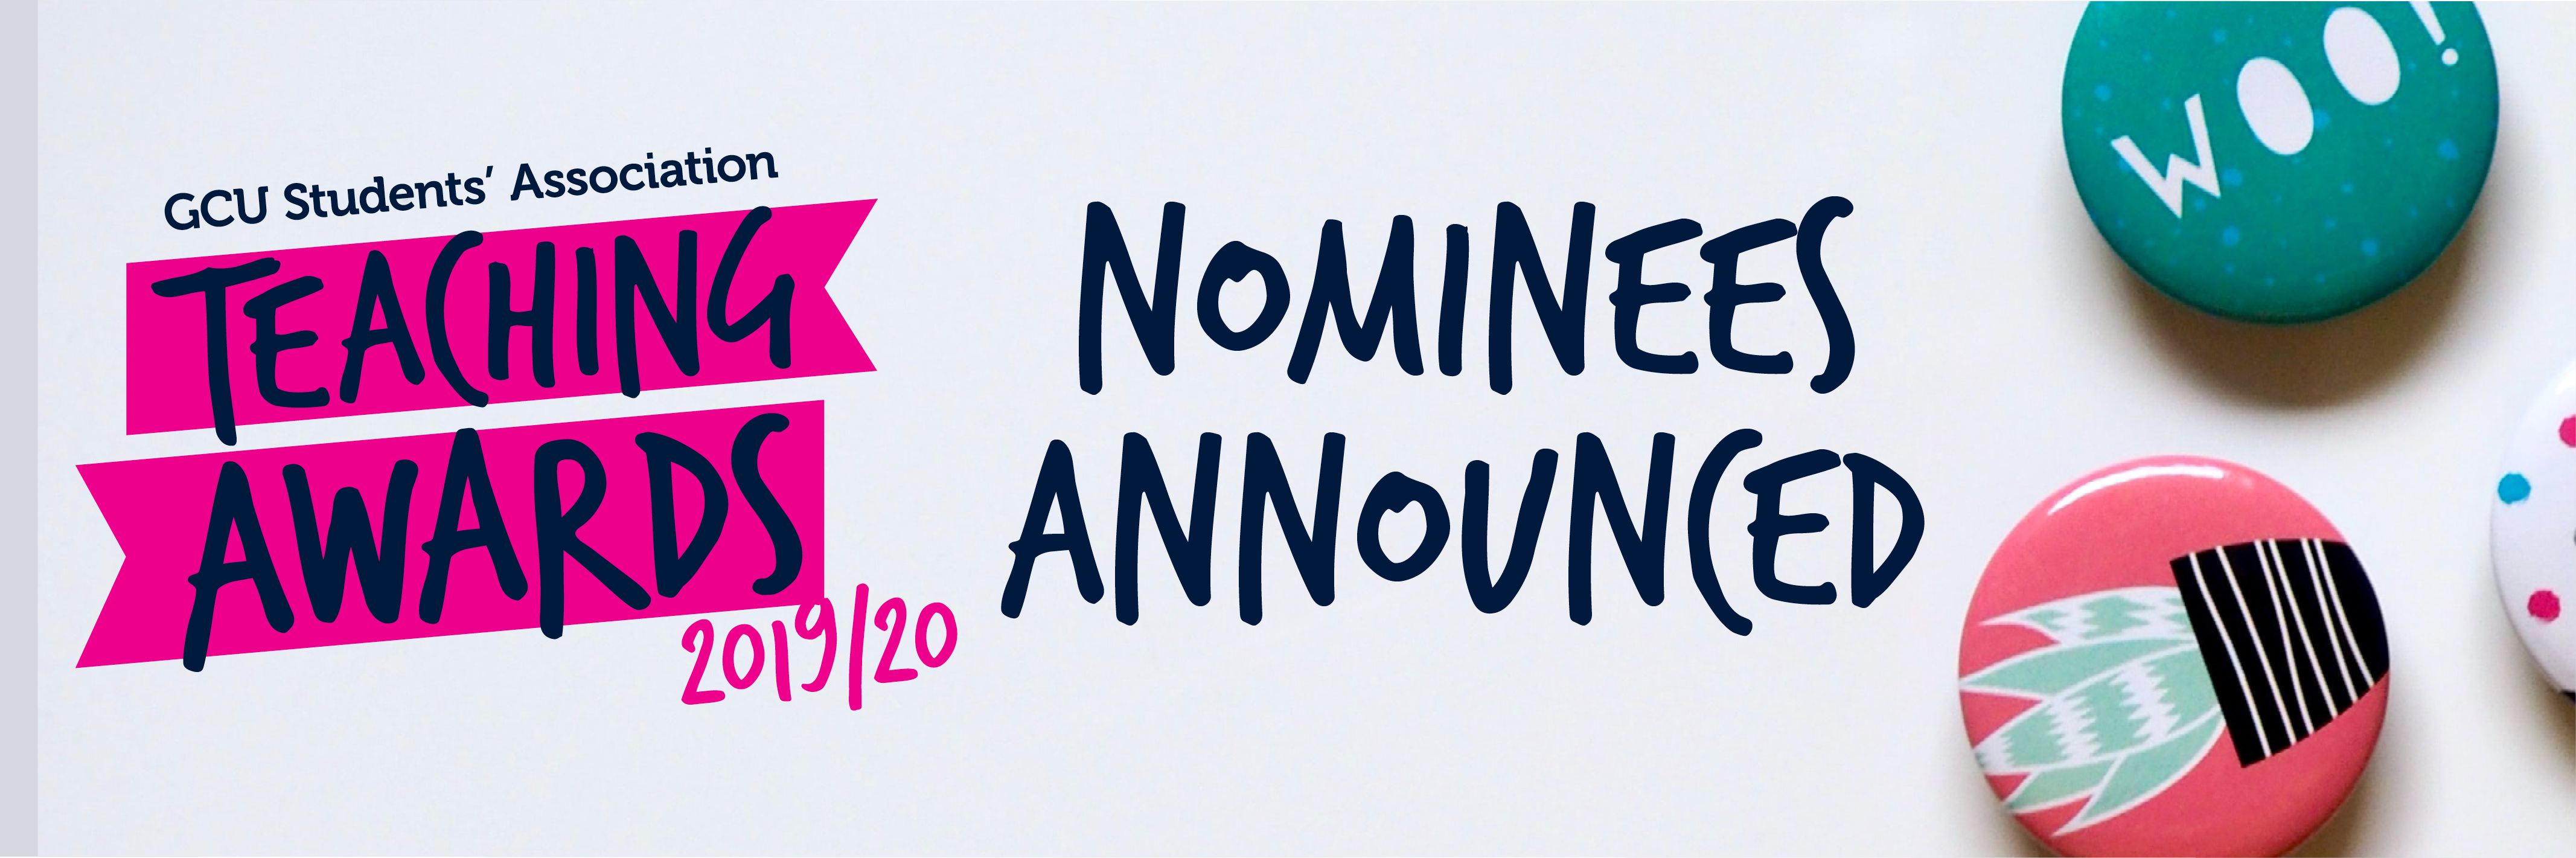 2019 20 teaching awards campaign website slider  nominees announced